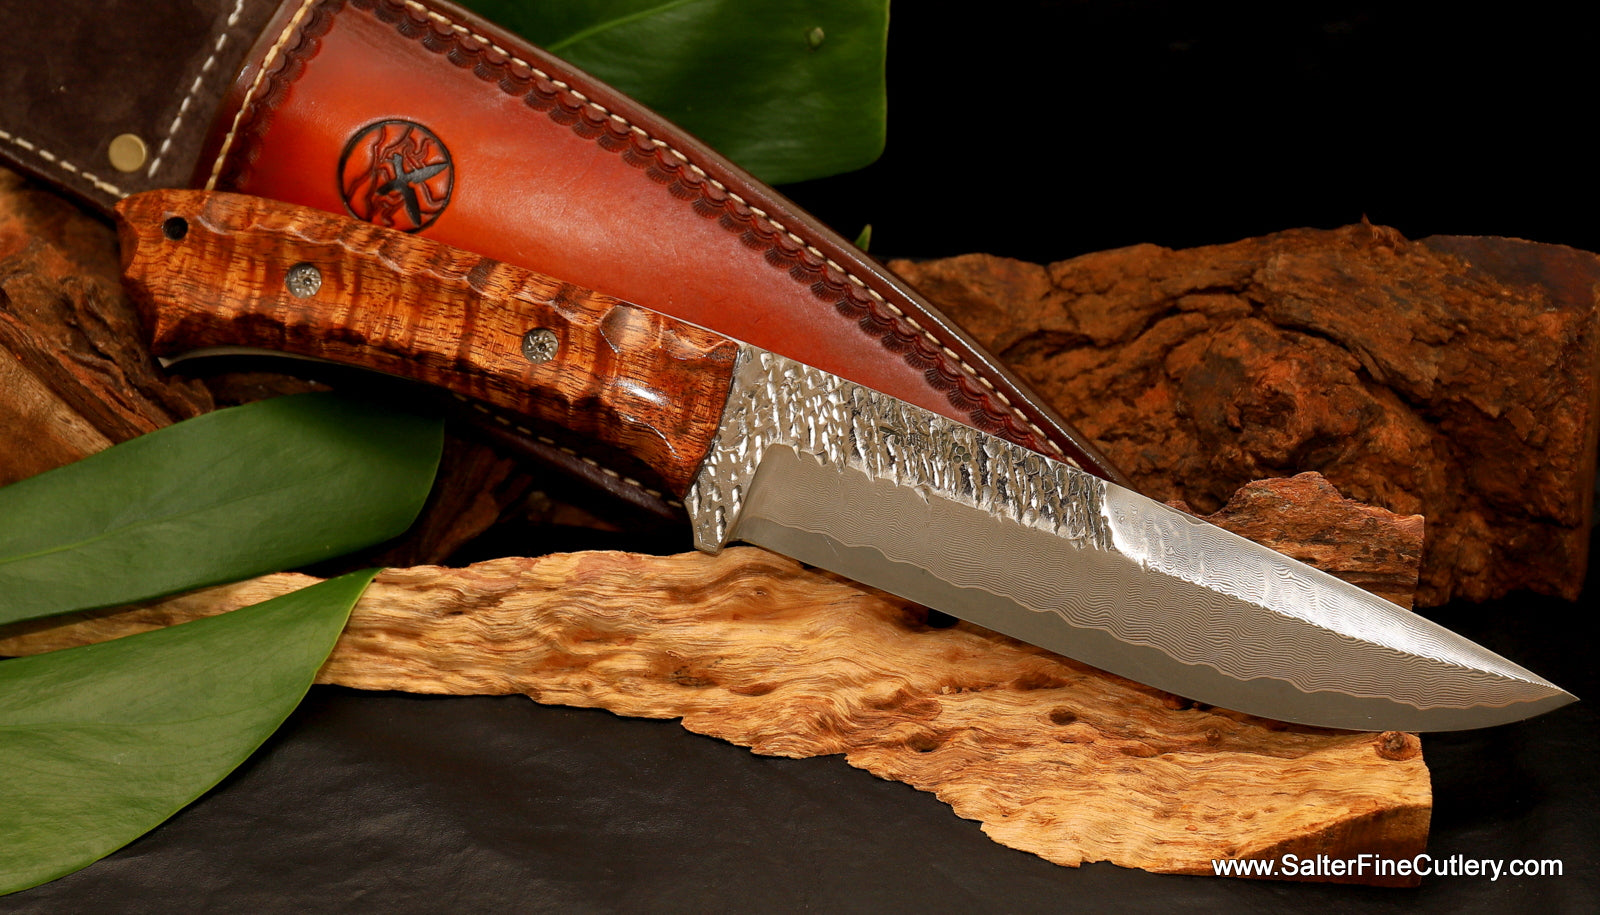 Custom handmade combination Raptor-River design pattern collectible knife exclusively from Salter Fine Cutlery